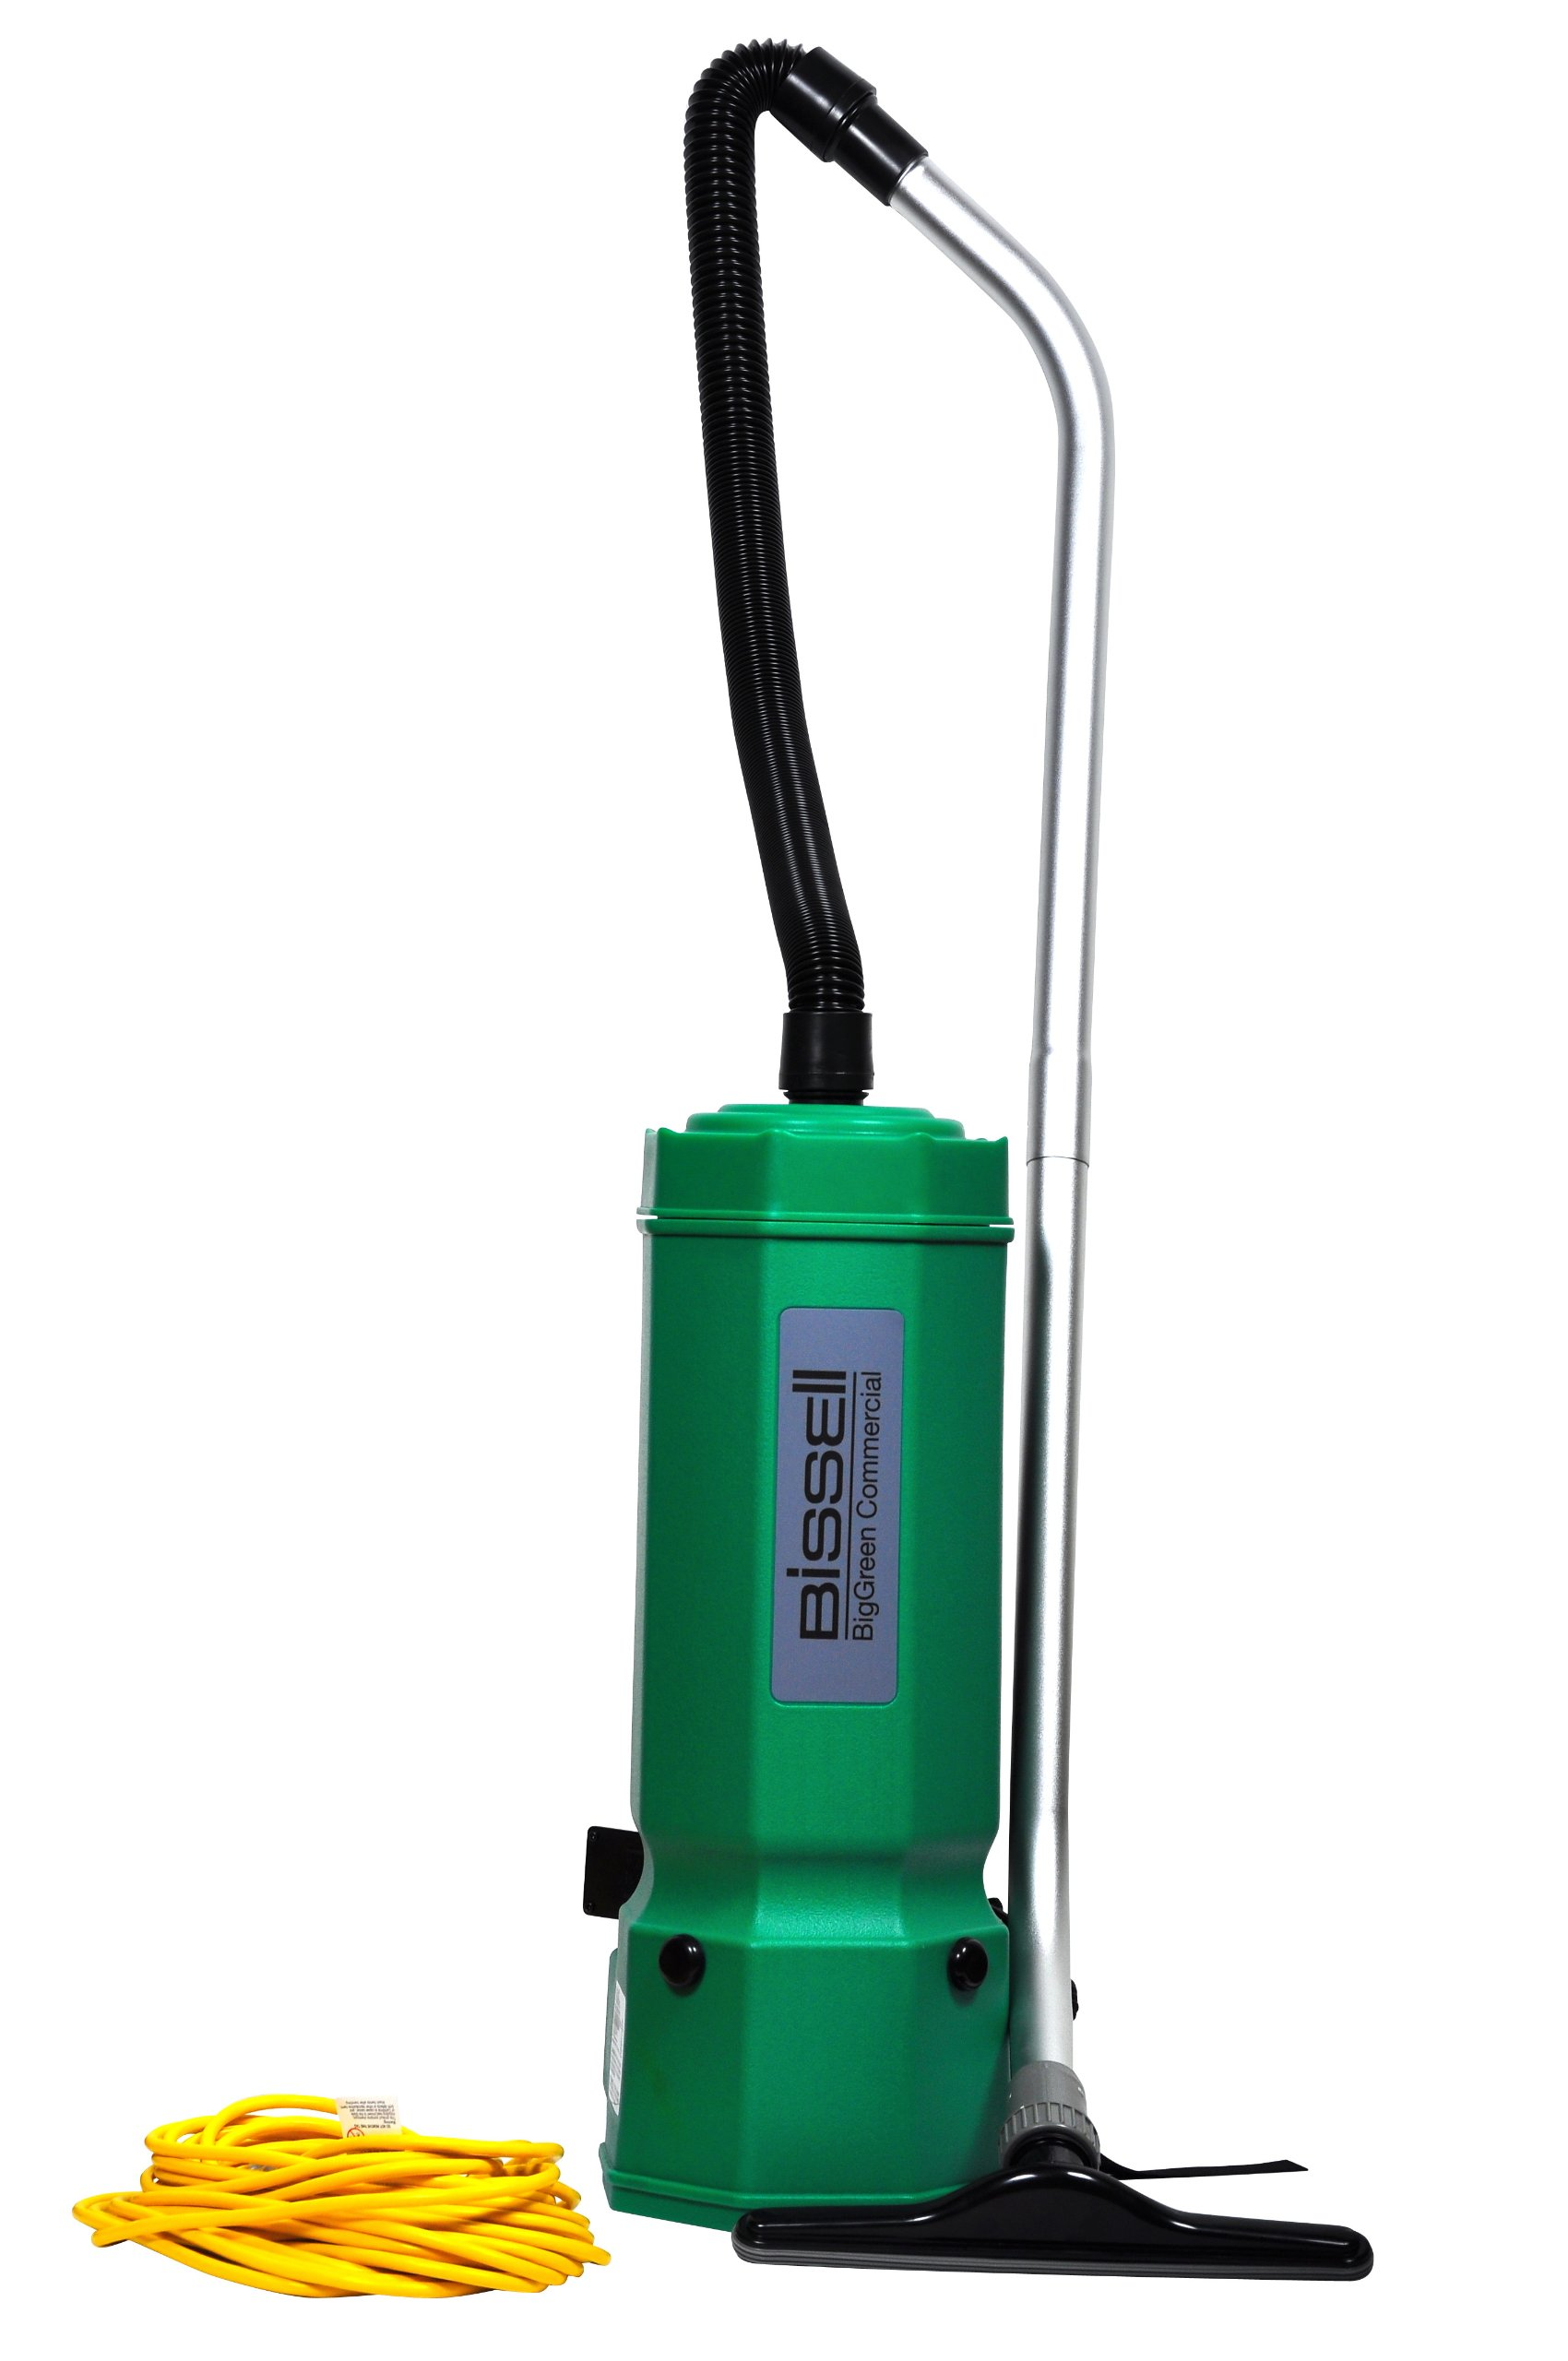 BISSELL COMMERCIAL 10 qt. 120V, 1175W Backpack Vacuum Cleaner